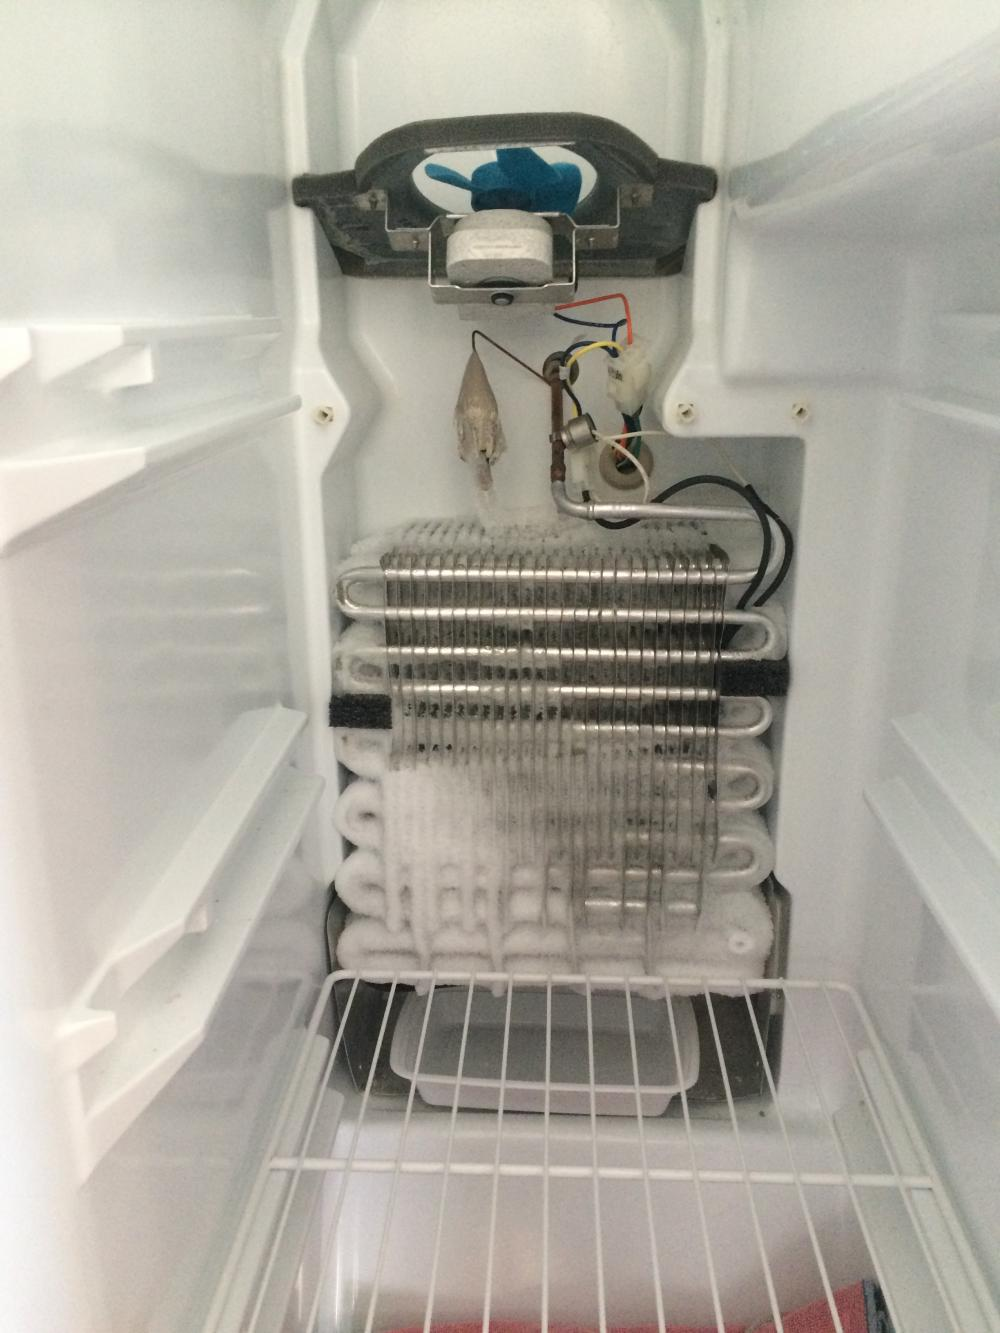 Refrigerator Freezer Coils Keep Freezing Up